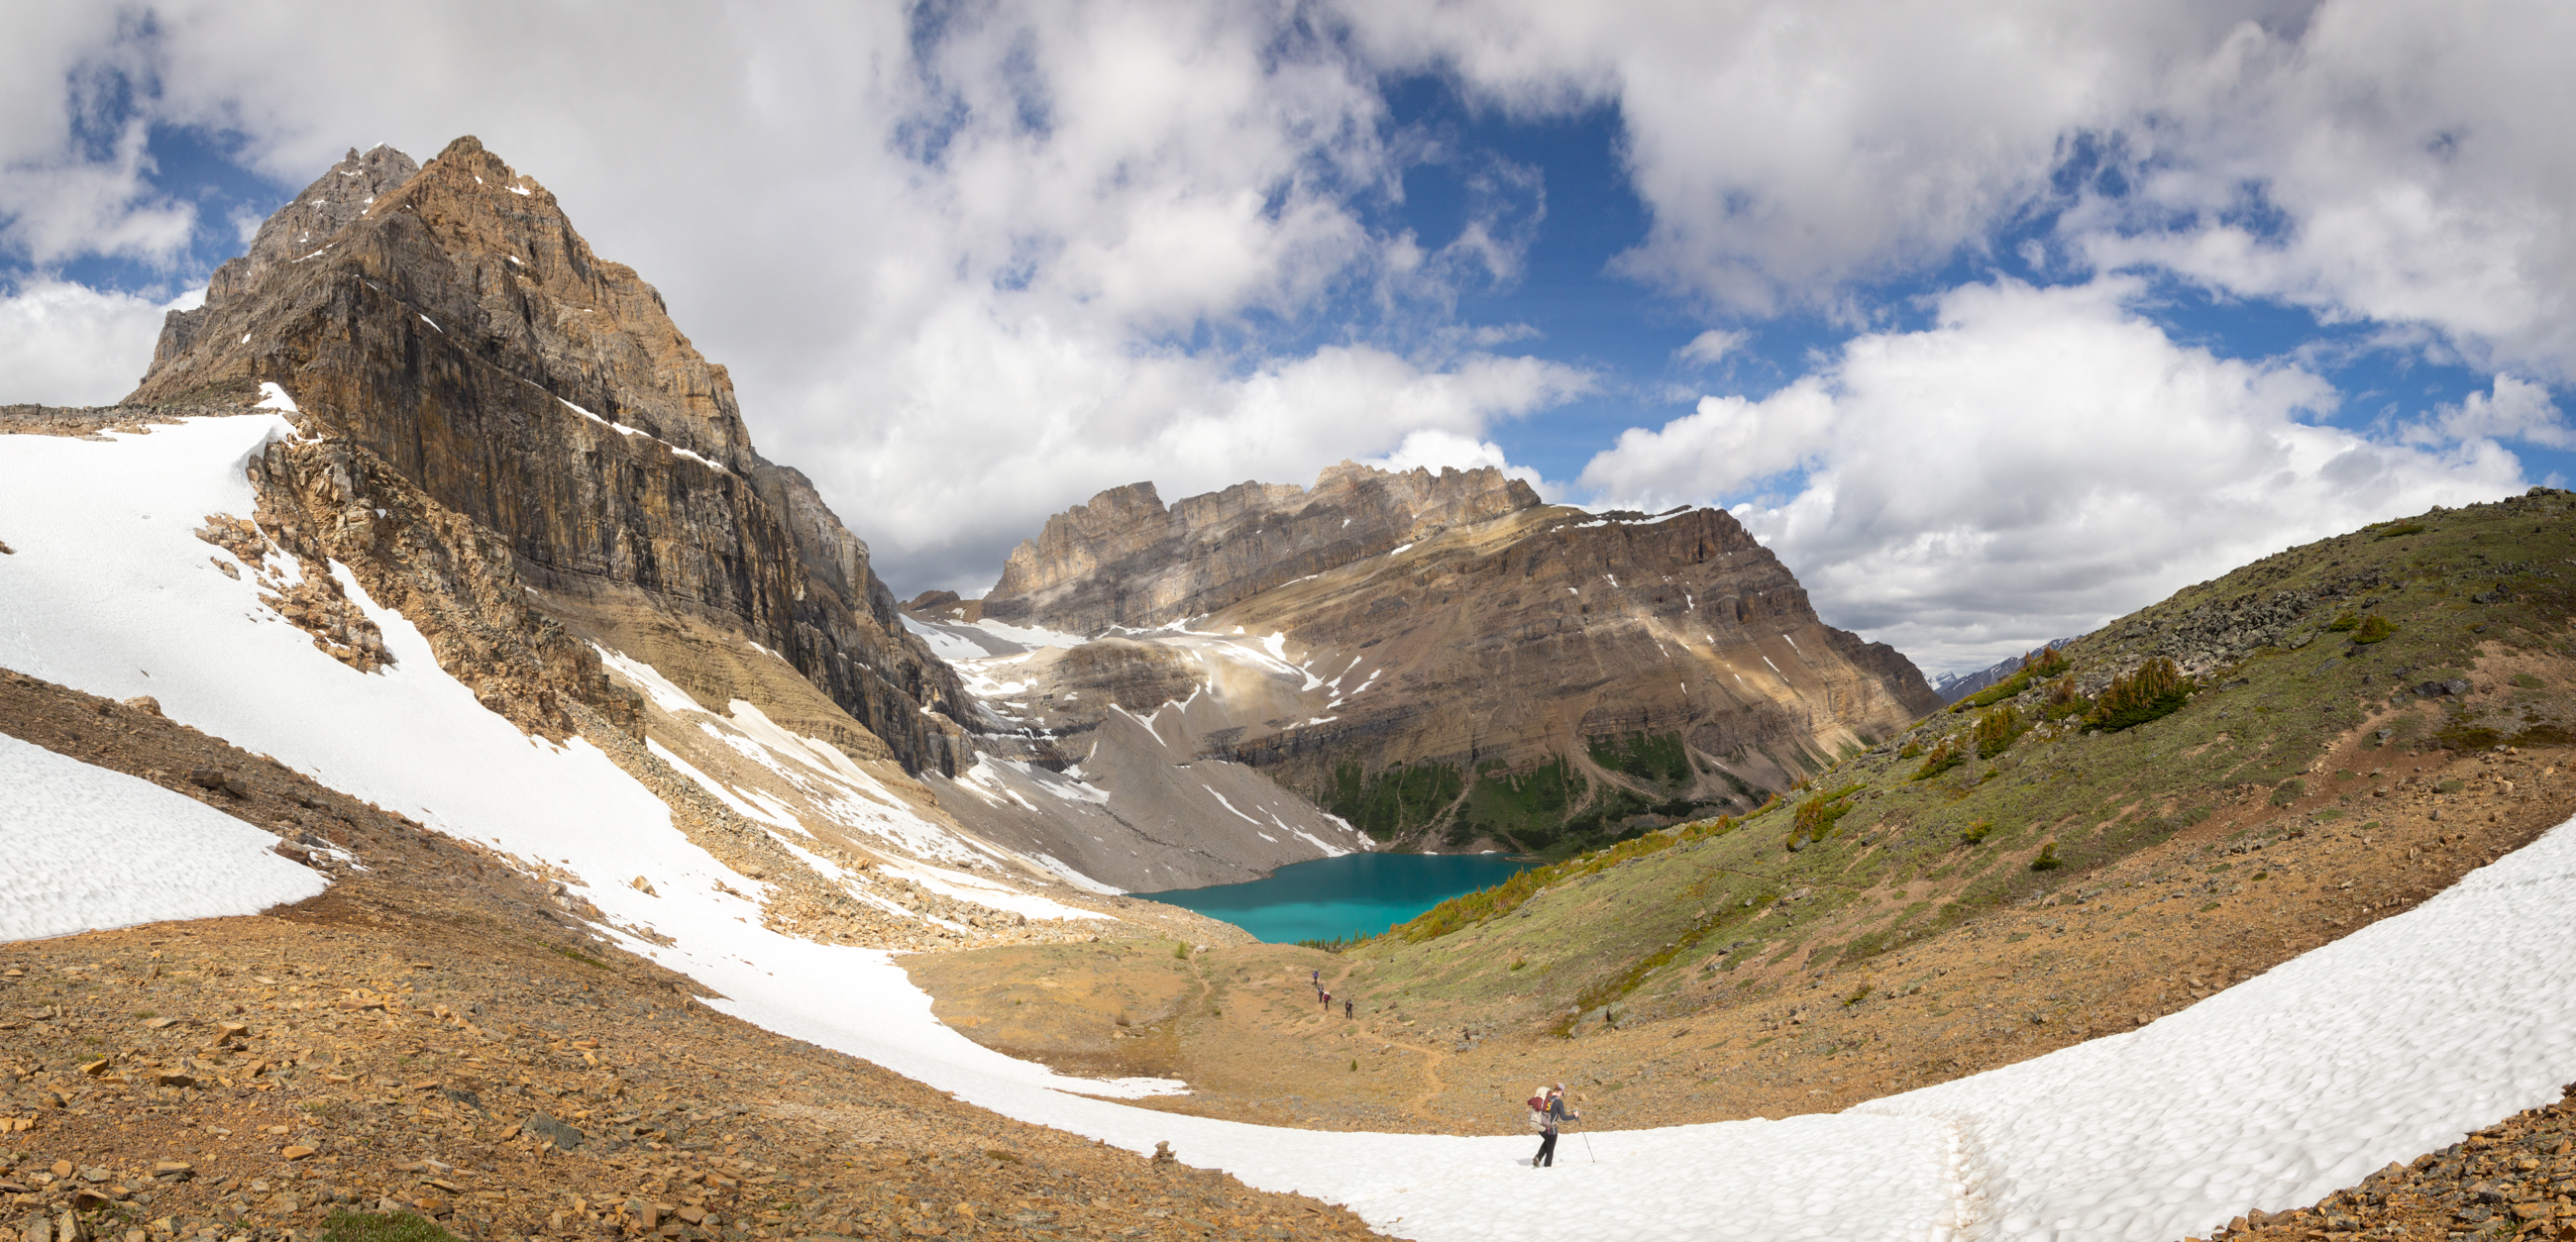 Packer Pass Canadian Rockies backcountry